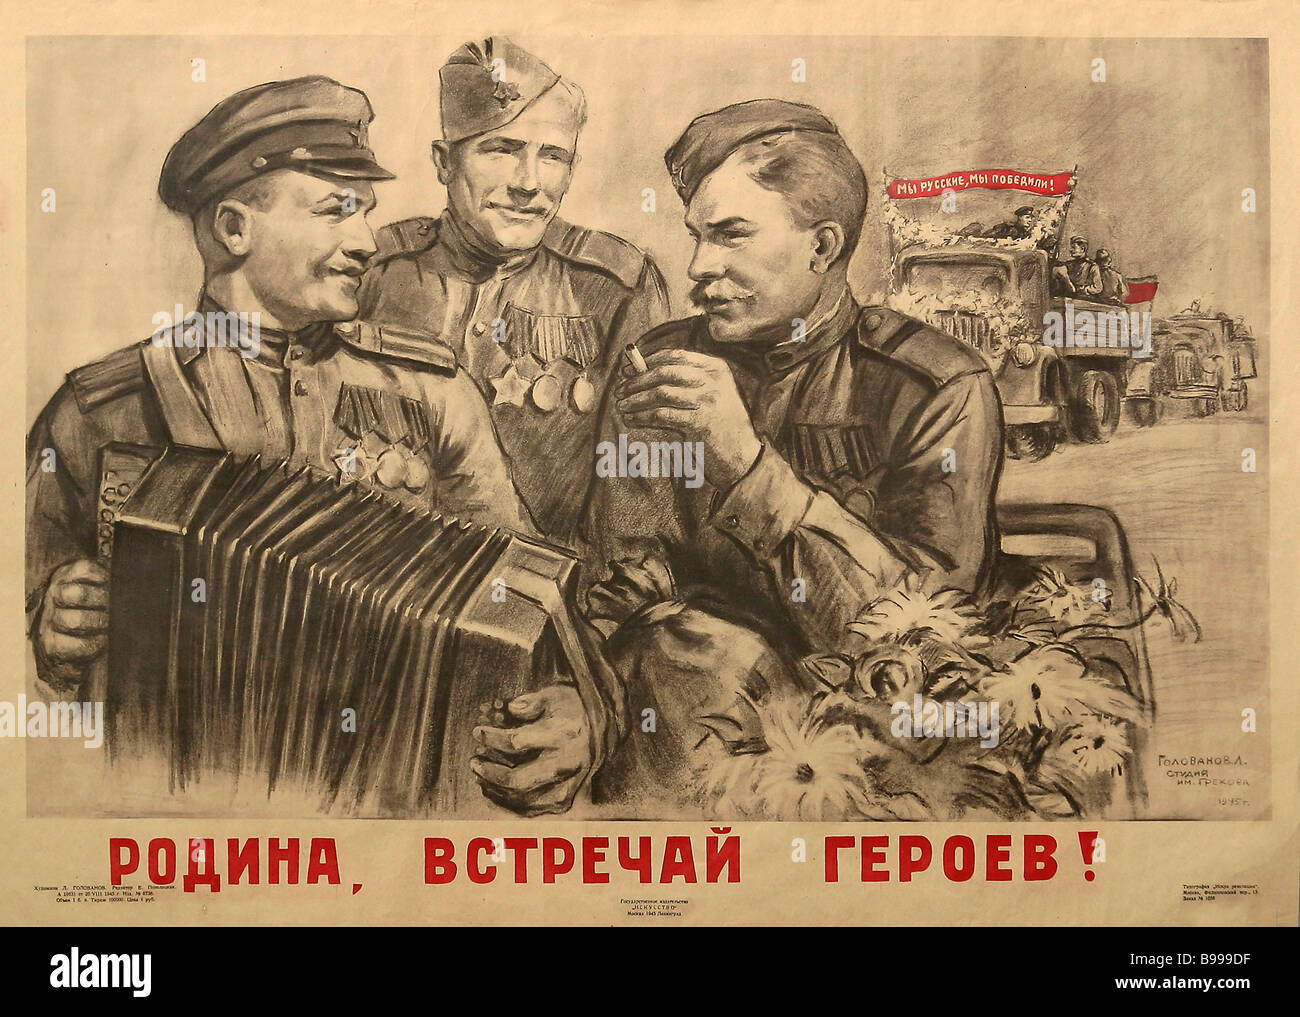 Golovanov s poster Motherland Meet Your Heroes 1945 - Stock Image